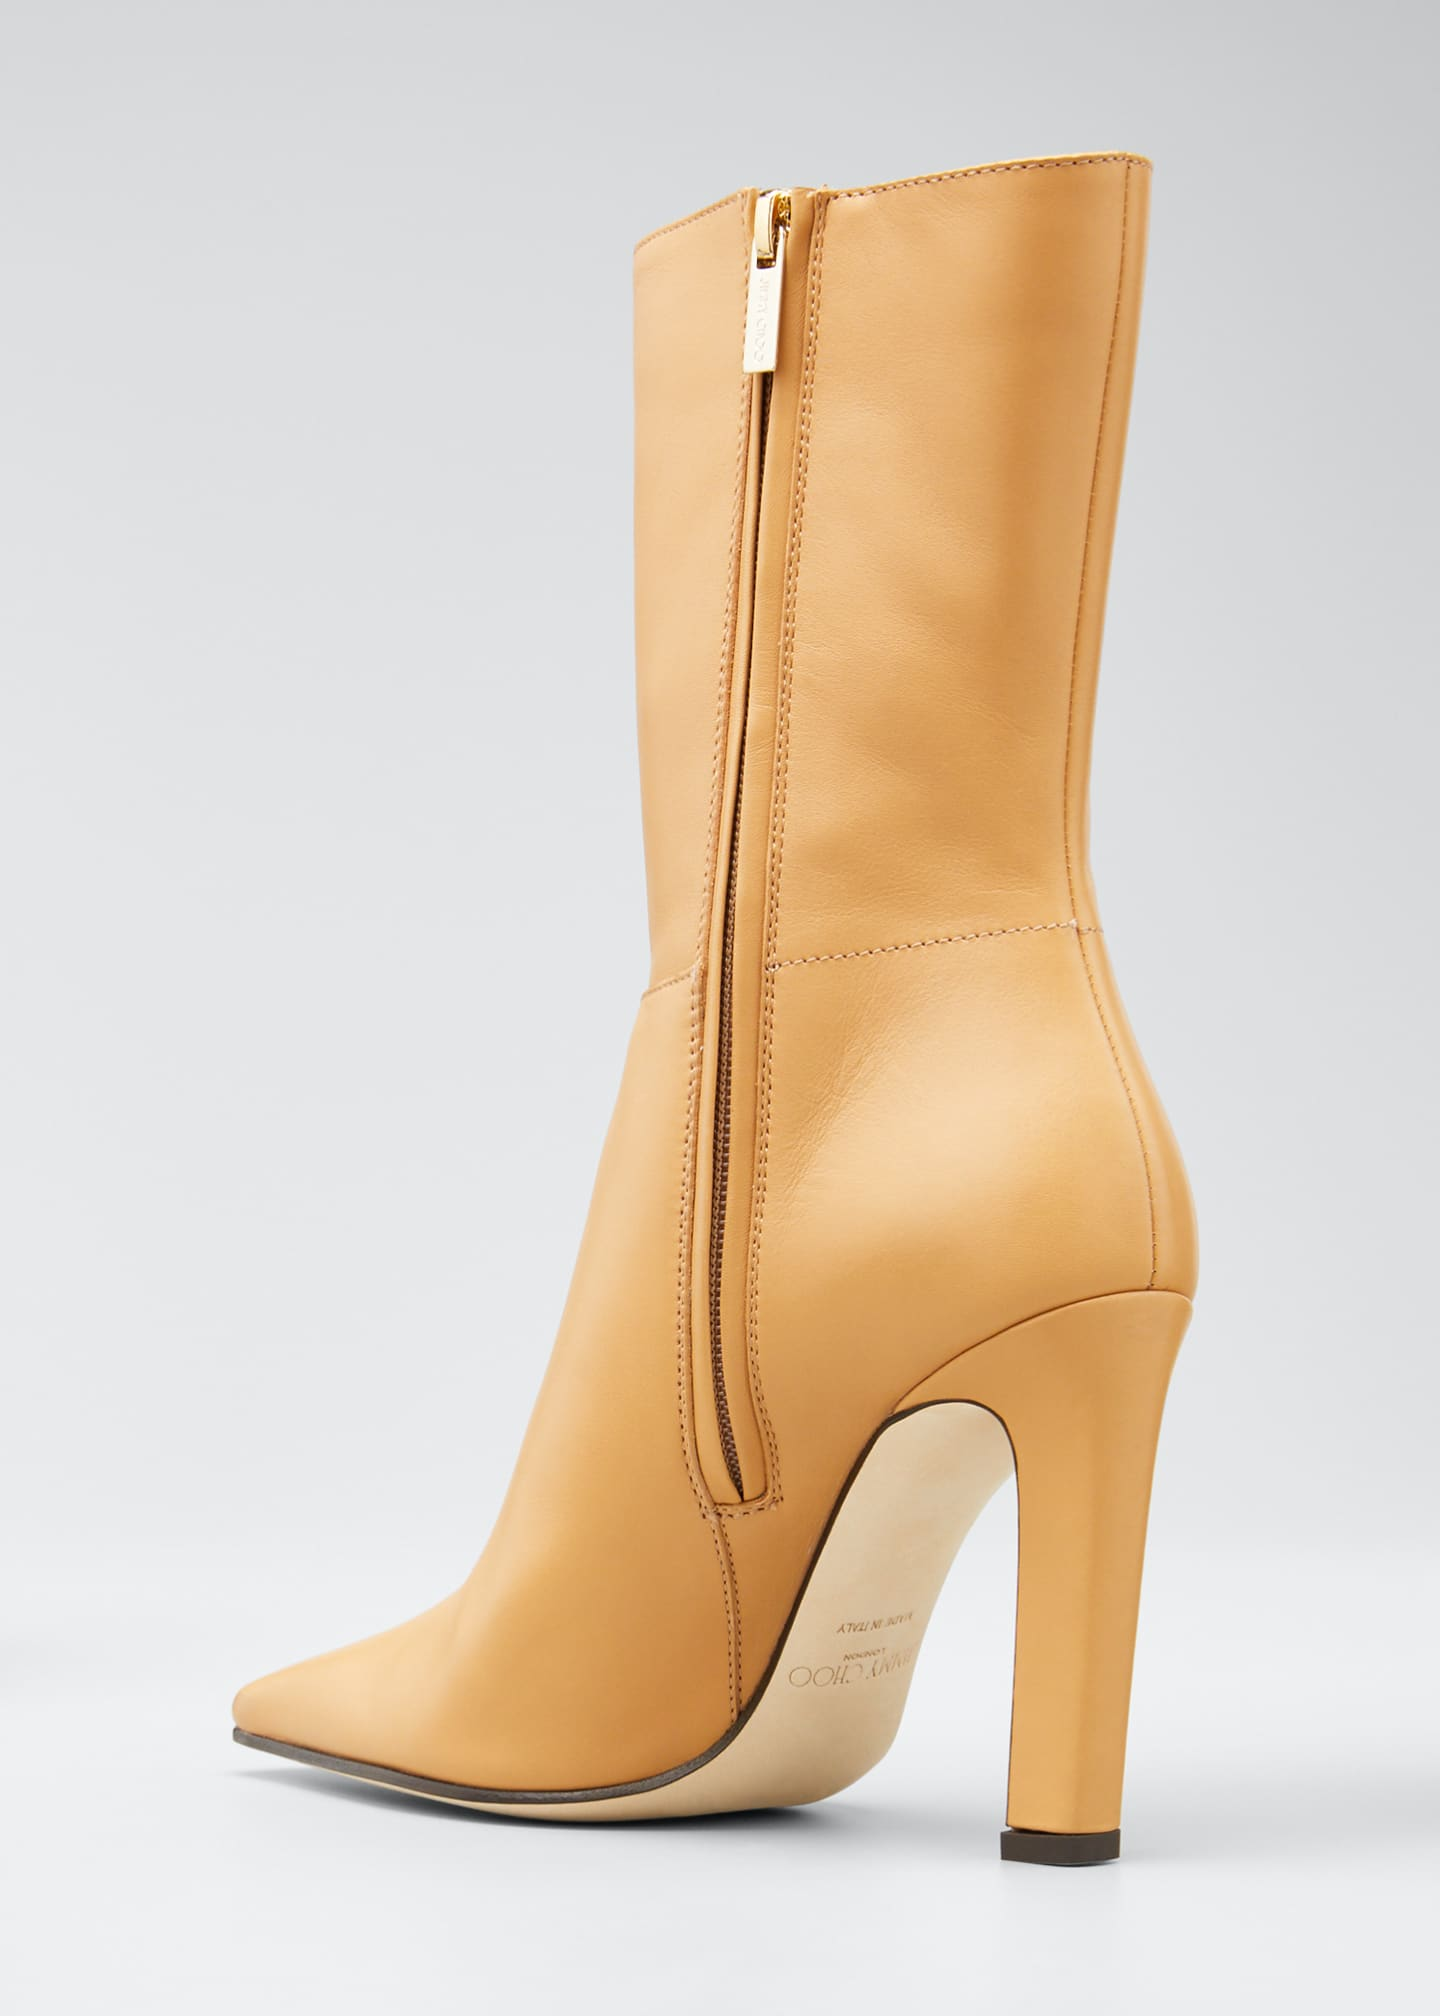 Image 4 of 5: Merche Soft Leather High-Heel Boots